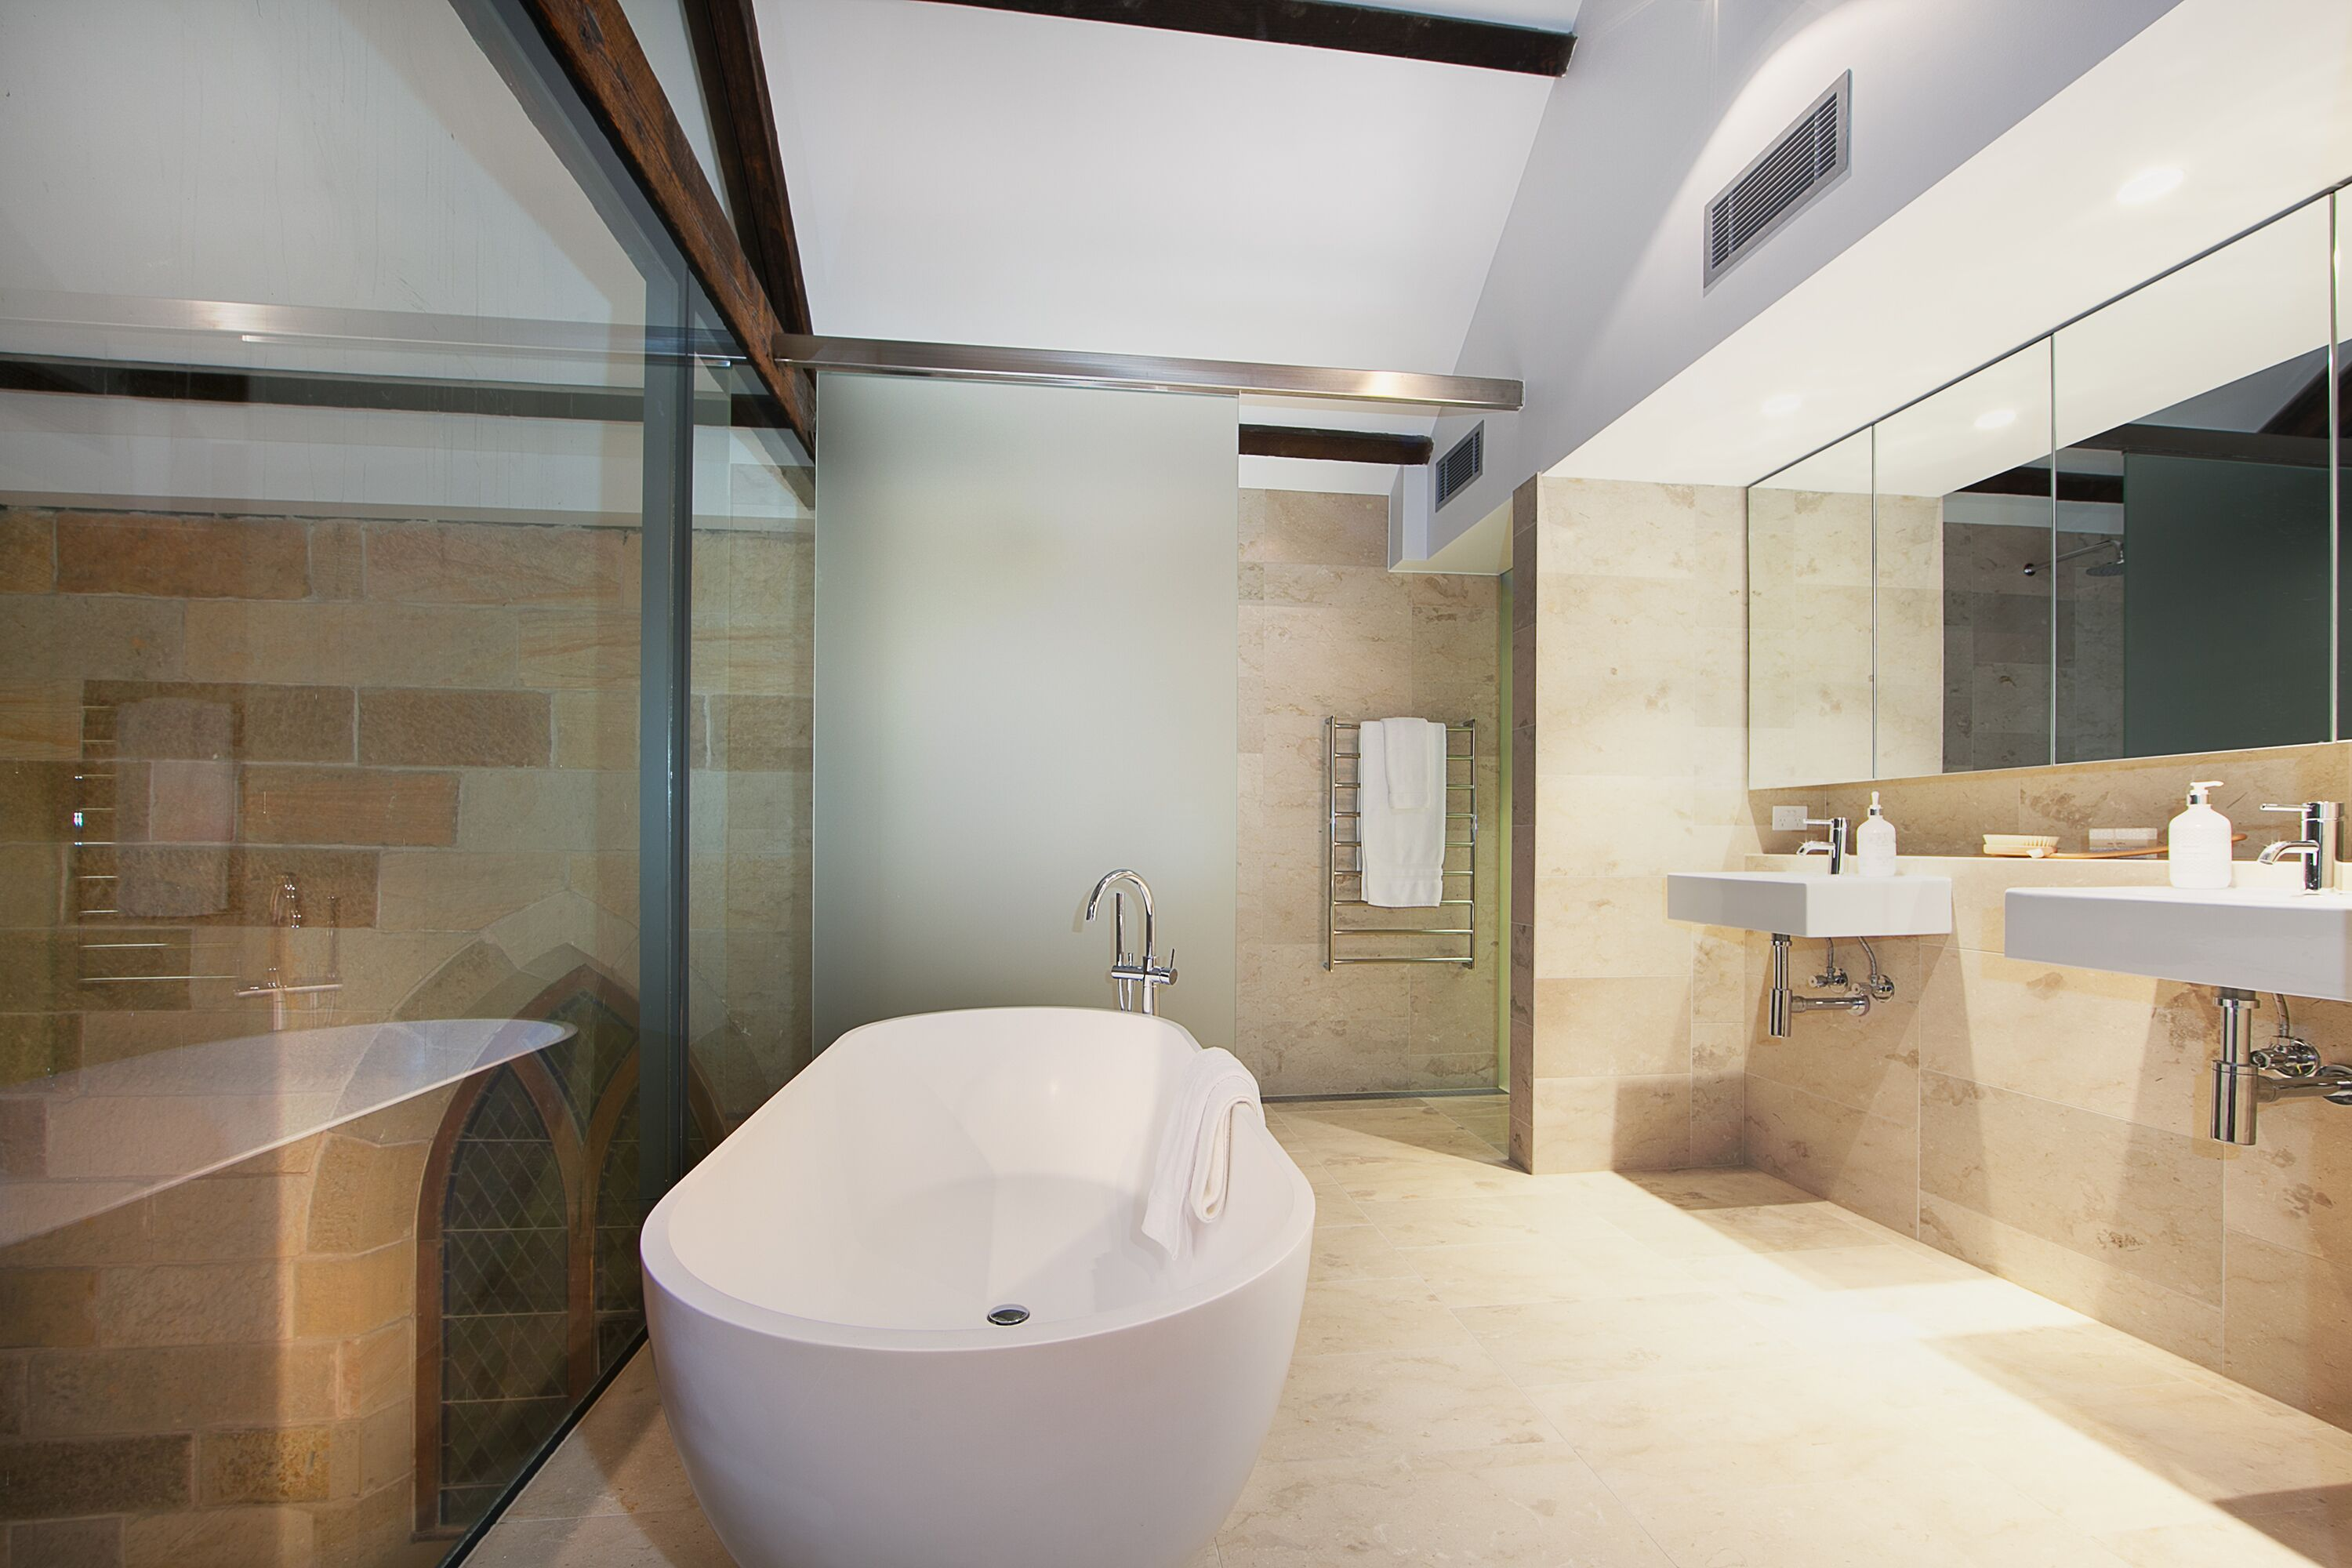 Bathroom area of new Sydney apartments with lighting and electrical work